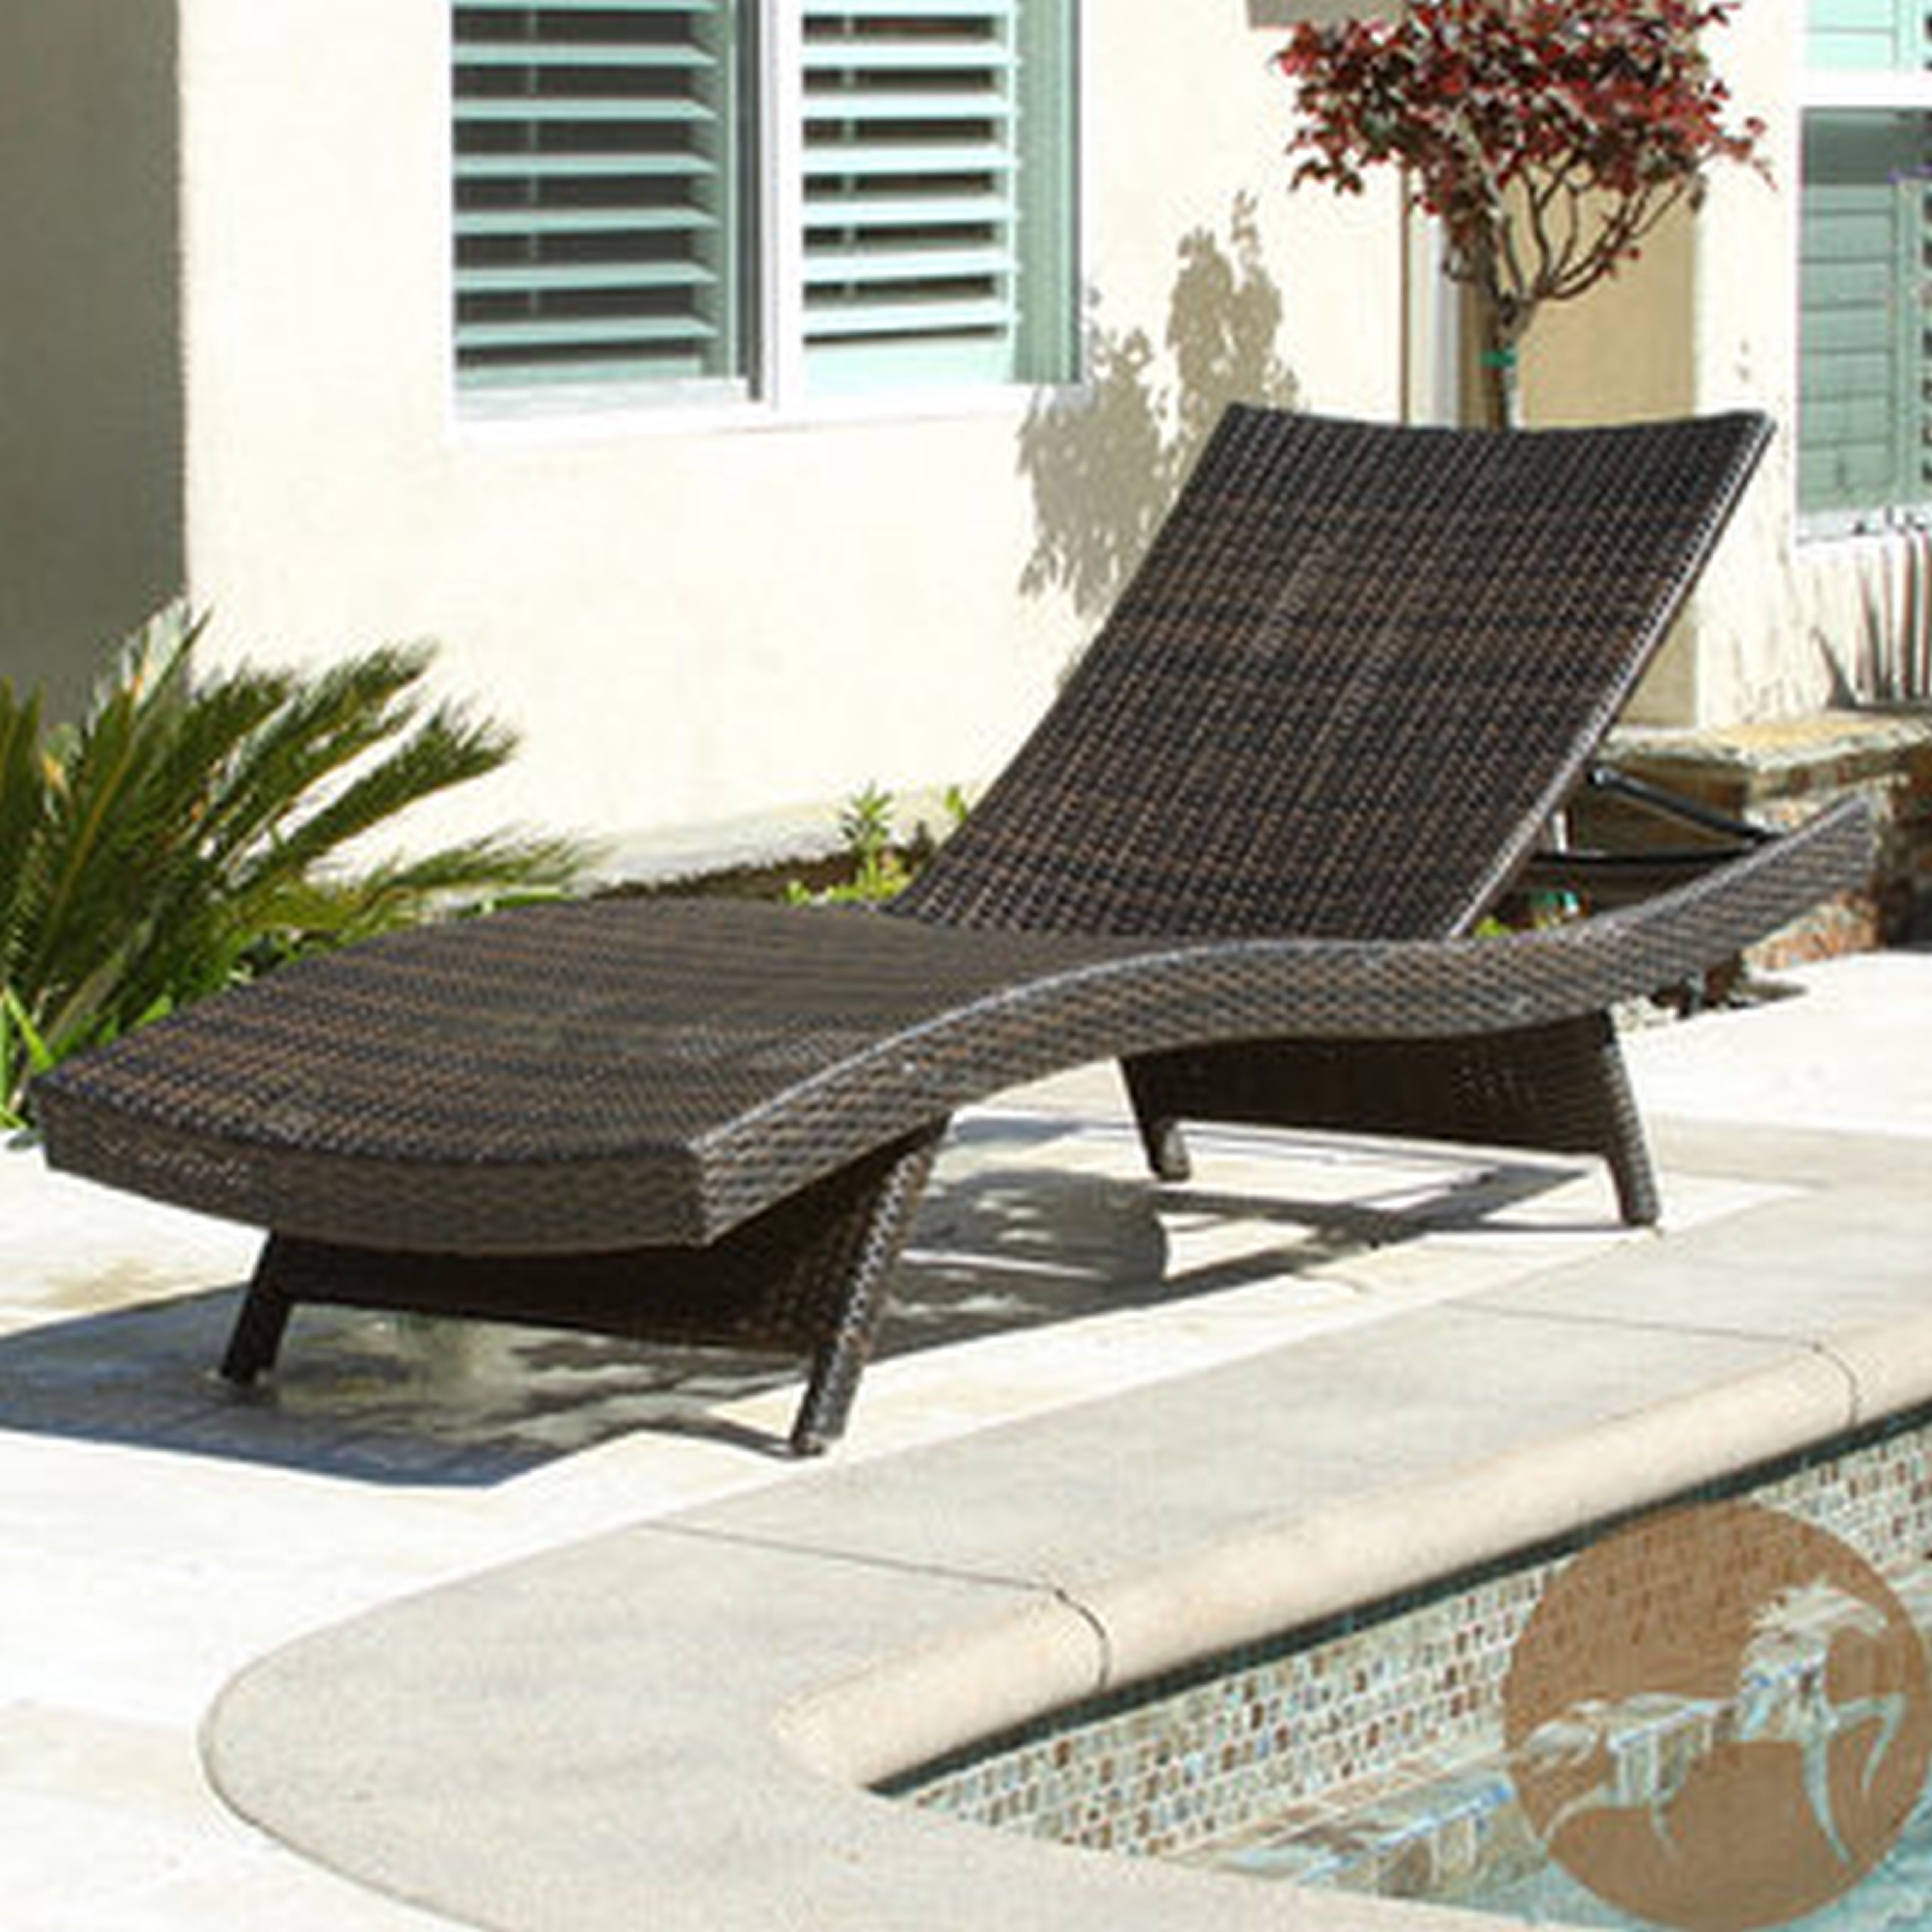 Preferred Convertible Chair : Cushions Rattan Chair Cushions High Back Patio Pertaining To Chaise Lounge Chair Outdoor Cushions (View 4 of 15)